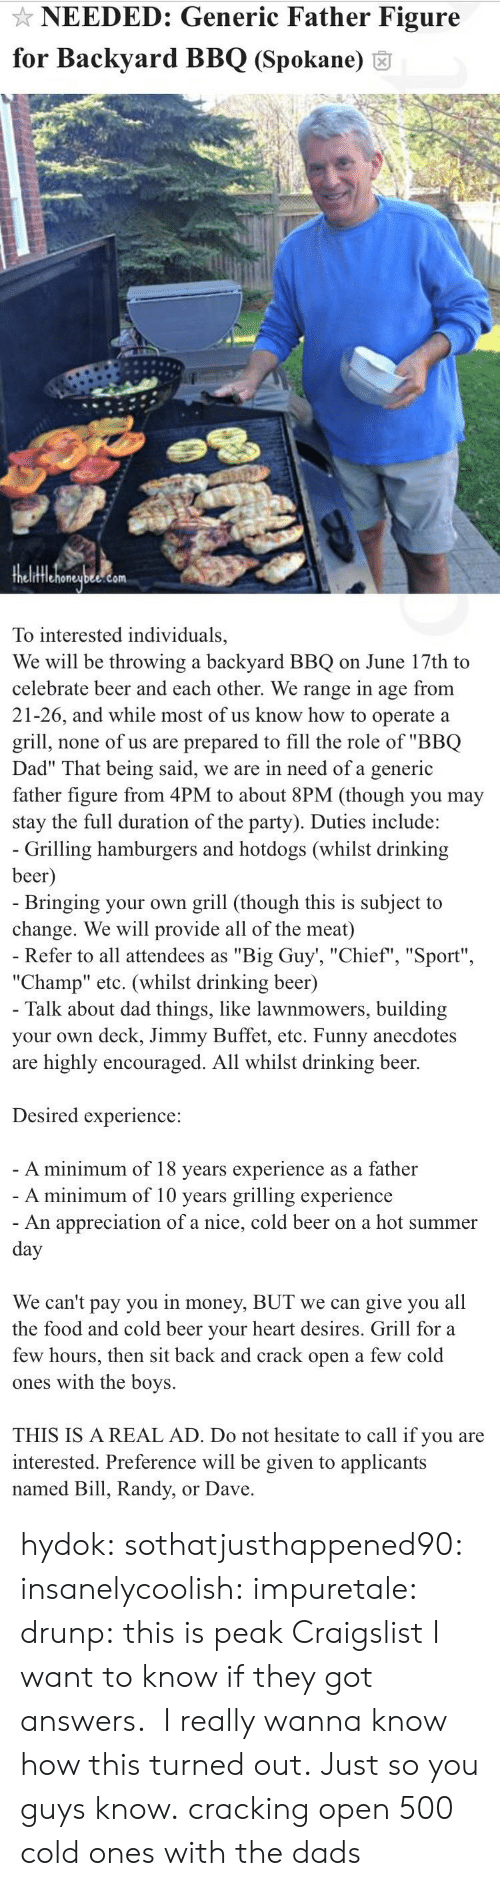 "Craigslist: NEEDED: Generic Father Figure  for Backyard BBQ (Spokane) 6  fflehoneubee.com  To interested individuals,  We will be throwing a backyard BBQ on June 17th to  celebrate beer and each other. We range in age from  21-26, and while most of us know how to operate a  grill, none of us are prepared to fill the role of ""BBQ  Dad"" That being said, we are in need of a generic  father figure from 4PM to about 8PM (though you may  stay the full duration of the party). Duties include:   Grilling hamburgers and hotdogs (whilst drinking  beer  Bringing your own grill (though this is subject to  change. We will provide all of the meat)  Refer to all attendees as ""Big Guy', ""Chief"", ""Sport""  ""Champ"" etc. (whilst drinking beer)  Talk about dad things, like lawnmowers, building  your own deck, Jimmy Buffet, etc. Funny anecdotes  are highly encouraged. All whilst drinking beer.  Desired experience:  A minimum of 18 vears experience as a father  A minimum of 10 years grilling experience  An appreciation of a nice, cold beer on a hot summer  We can't pay you in money, BUT we can give you all  the food and cold beer vour heart desires. Grill for a  few hours, then sit back and crack open a few cold  ones with the boys.  THIS IS A REAL AD. Do not hesitate to call if you are  interested. Preference will be given to applicants  named Bill, Randy, or Dave hydok: sothatjusthappened90:  insanelycoolish:   impuretale:  drunp: this is peak Craigslist I want to know if they got answers.   I really wanna know how this turned out.               Just so you guys know.  cracking open 500 cold ones with the dads"